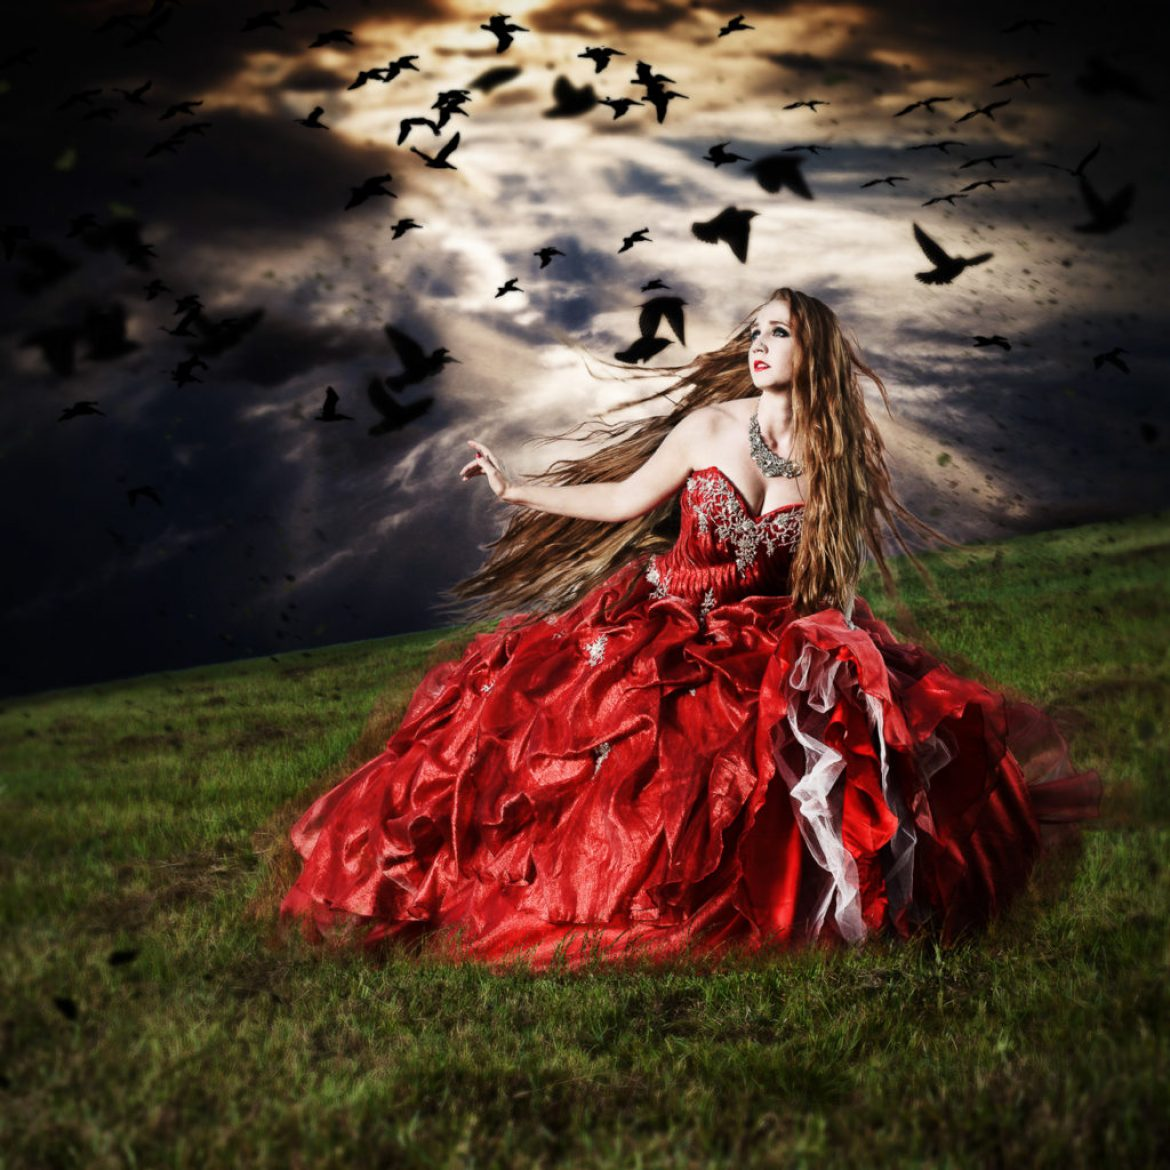 Red fine art photography series